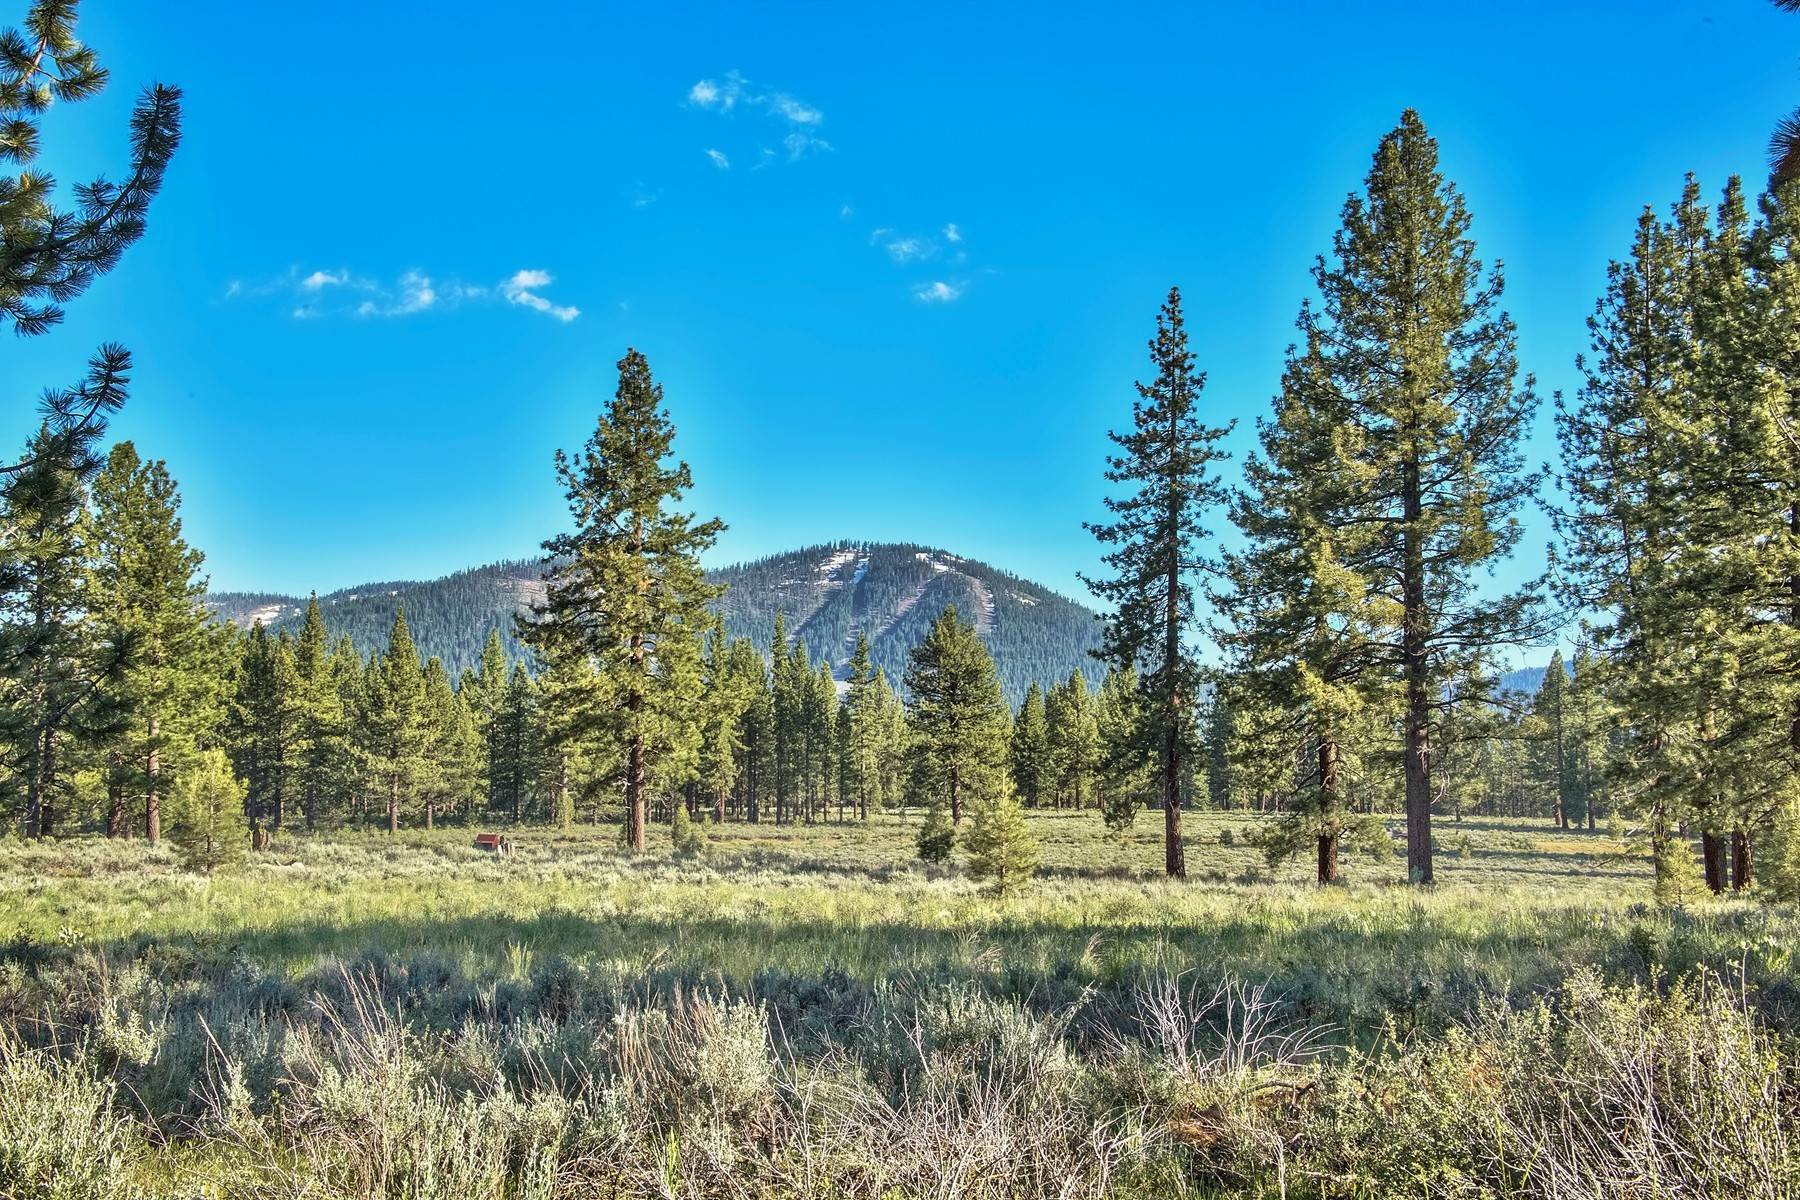 Terreno por un Venta en 9701 North Shore Boulevard, Truckee, CA 9701 North Shore Blvd., 9701 Highway 267 Truckee, California 96161 Estados Unidos